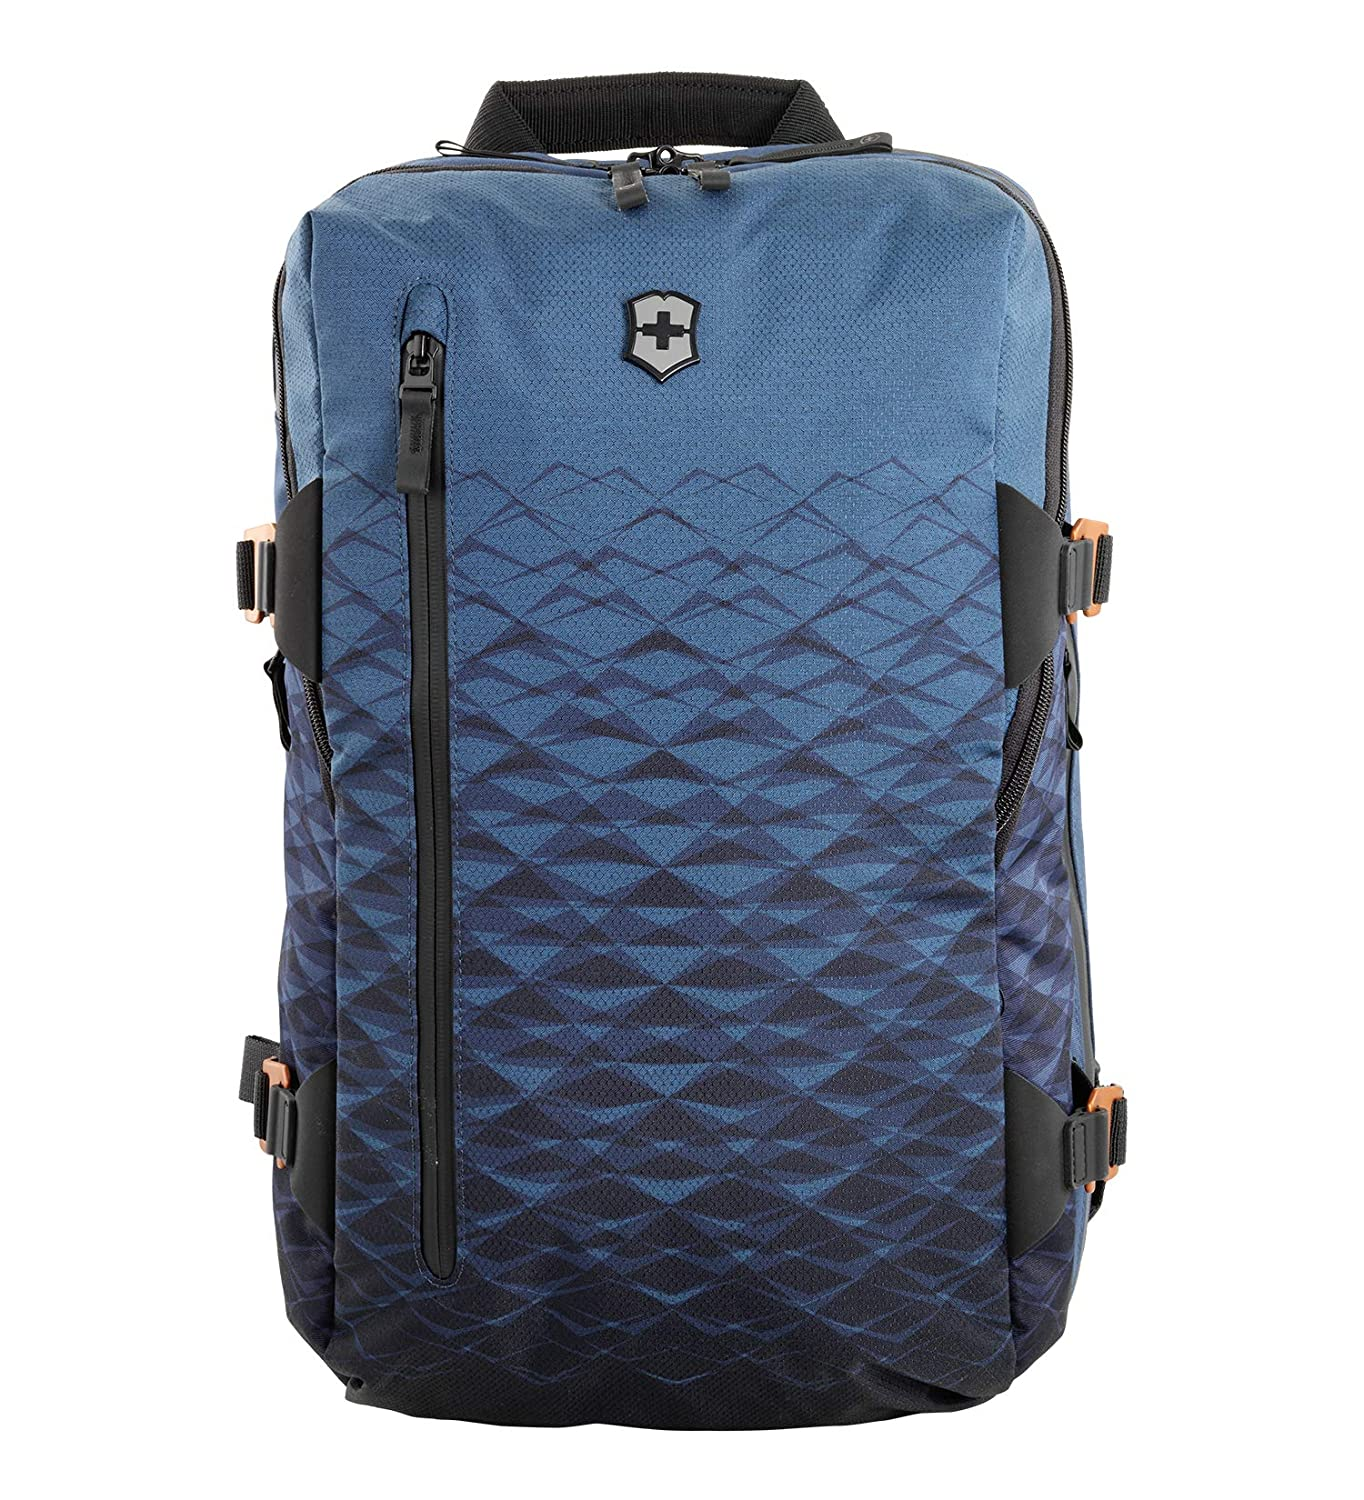 Amazon.com: Victorinox Vx Touring Laptop Backpack 17, Dark Teal One Size: Altman Luggage Co.